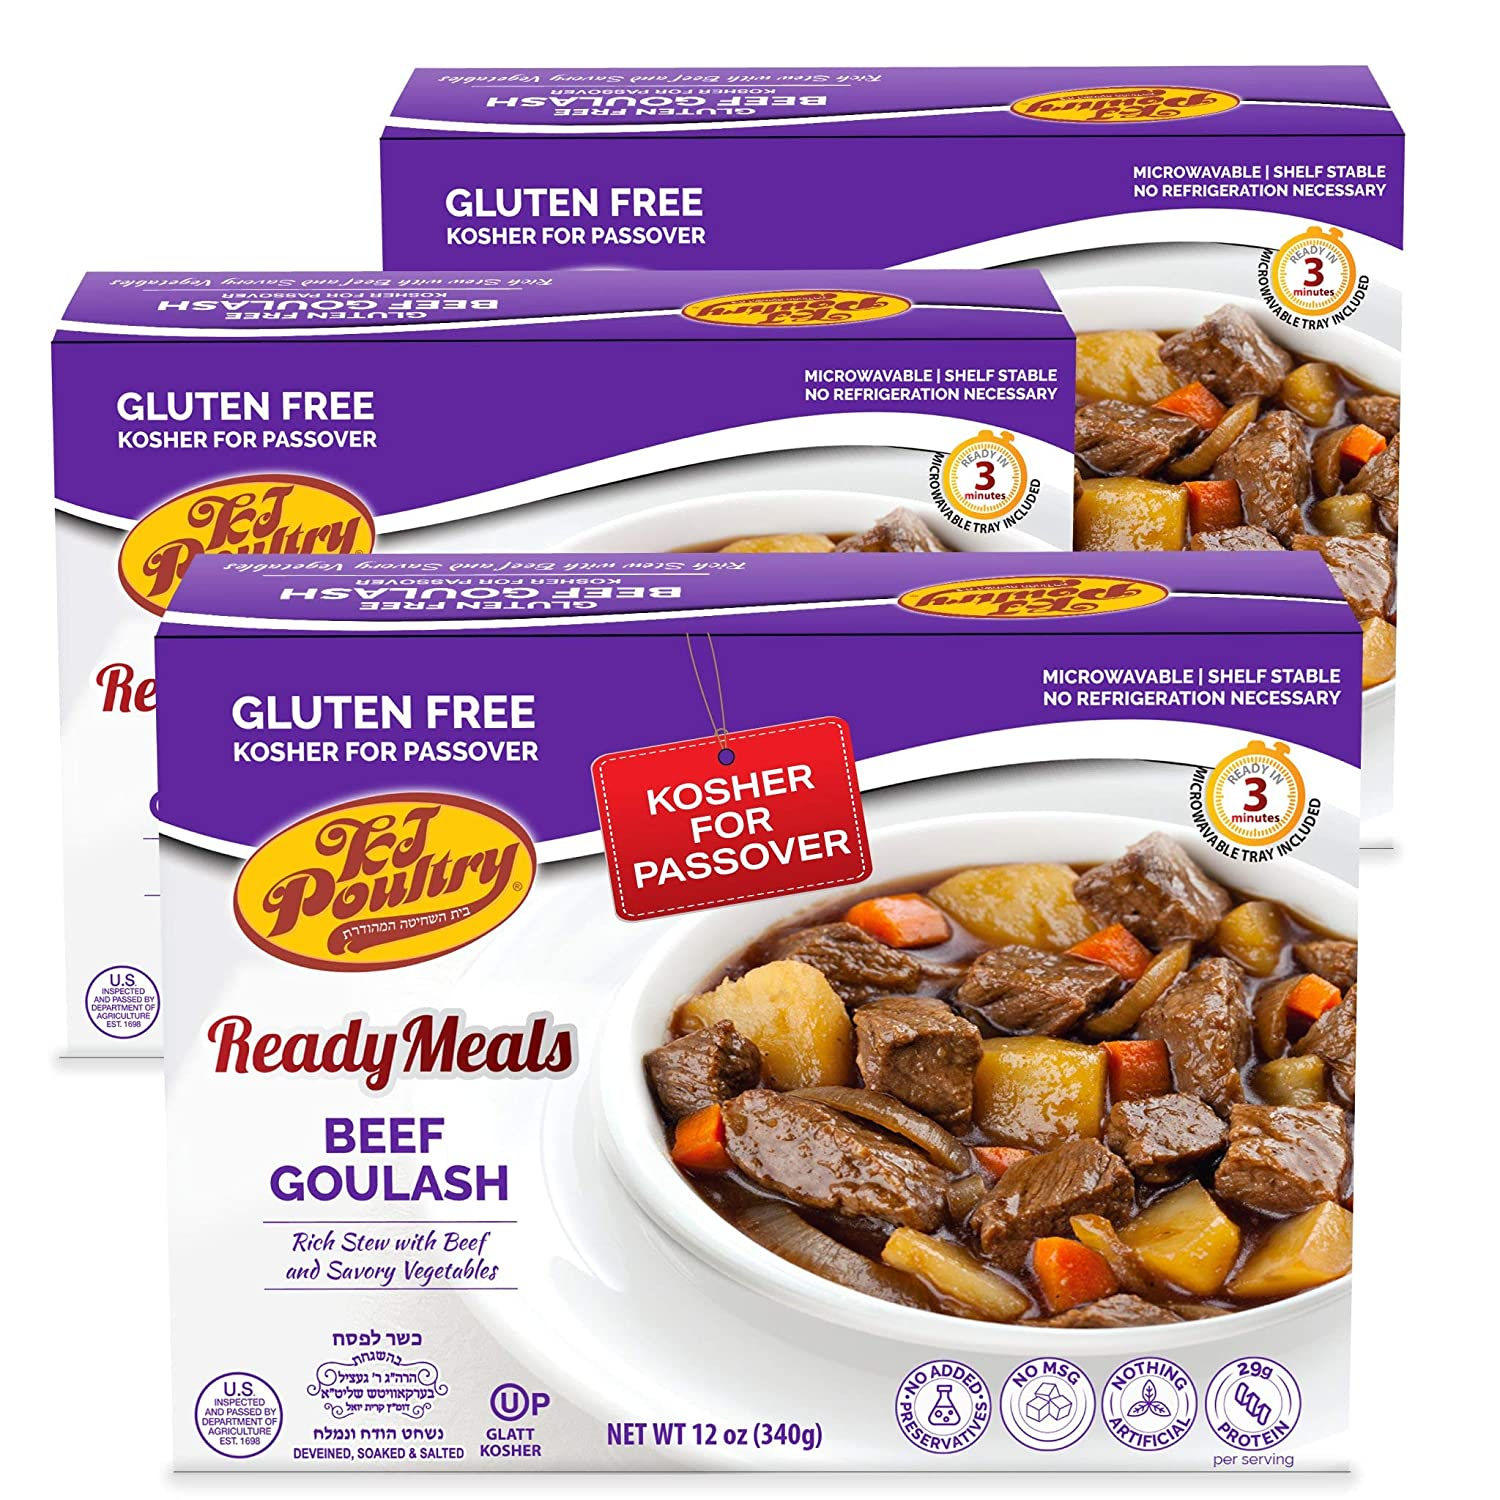 Kosher For Passover Food Beef Goulash - MRE Meat Meals Ready to Eat - Gluten Free (3 Pack) - Prepared Entree Fully Cooked, Shelf Stable Microwave Dinner